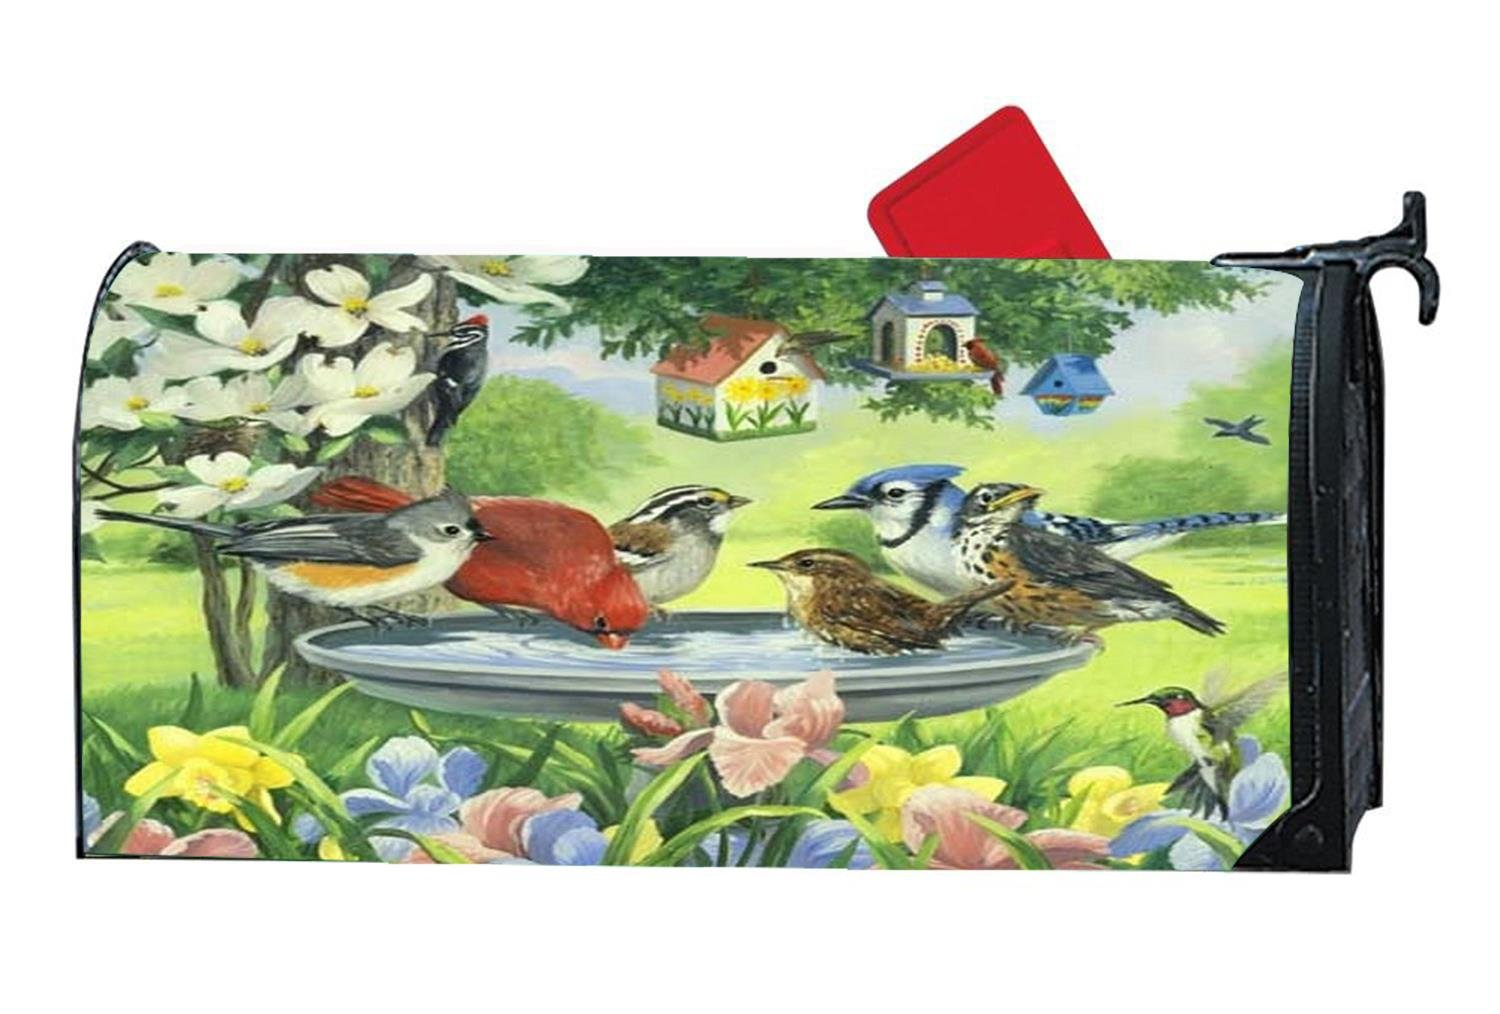 Diymbcovers Personalized Magnetic Mailbox Cover For Standard Sized Mailboxes Spring Flowers And Birds Mailboxes Accessories Bonsaipaisajismo Hardware